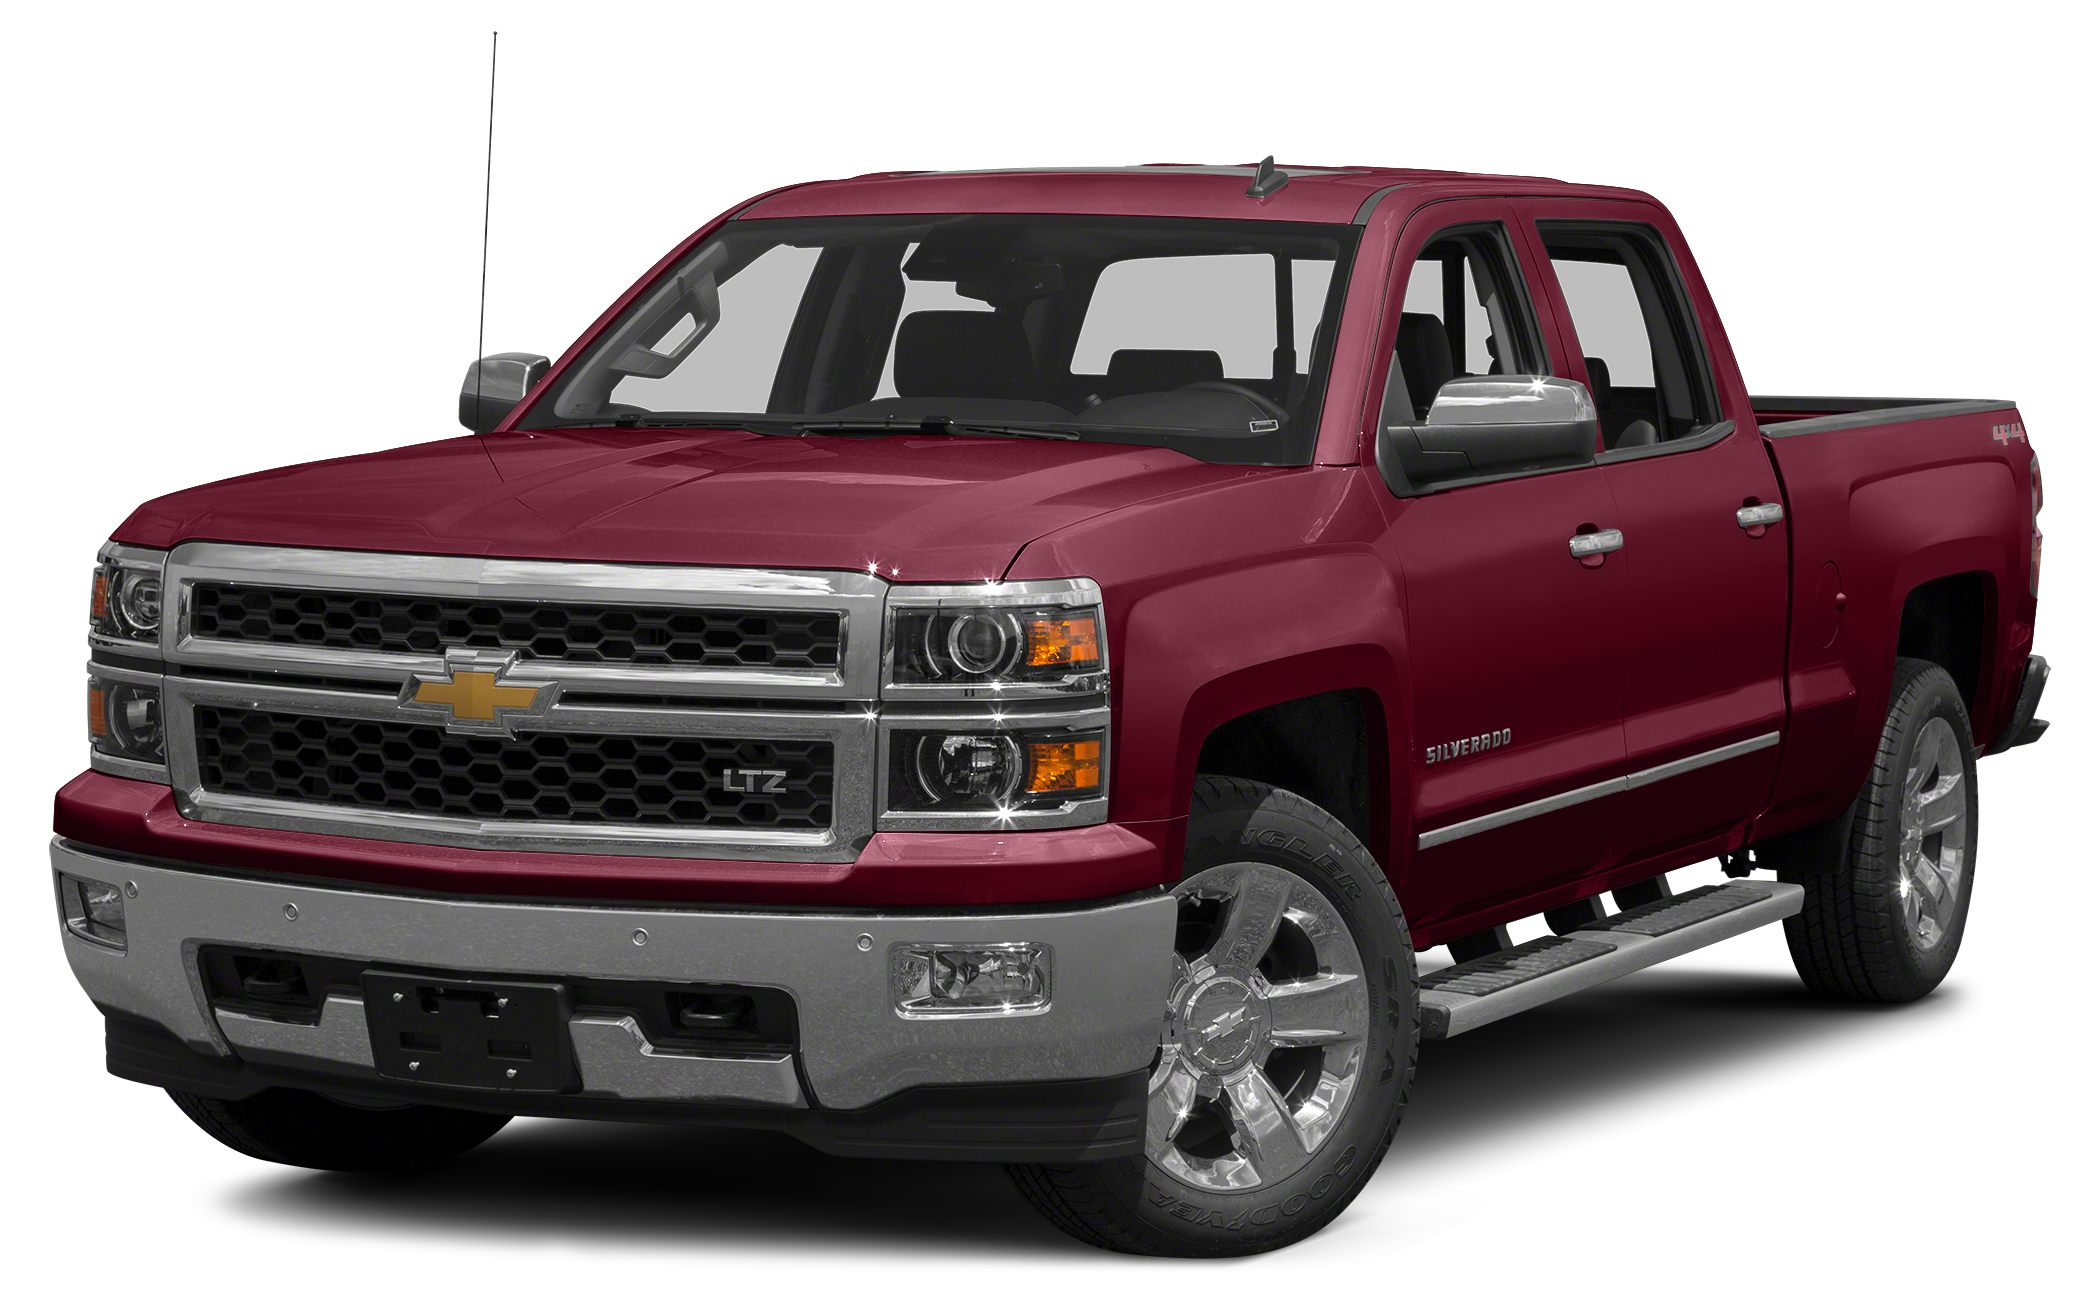 2015 Chevrolet Silverado 1500 1LT Miles 10Color Deep Ruby Metallic Stock 000C5400 VIN 3GCPCR